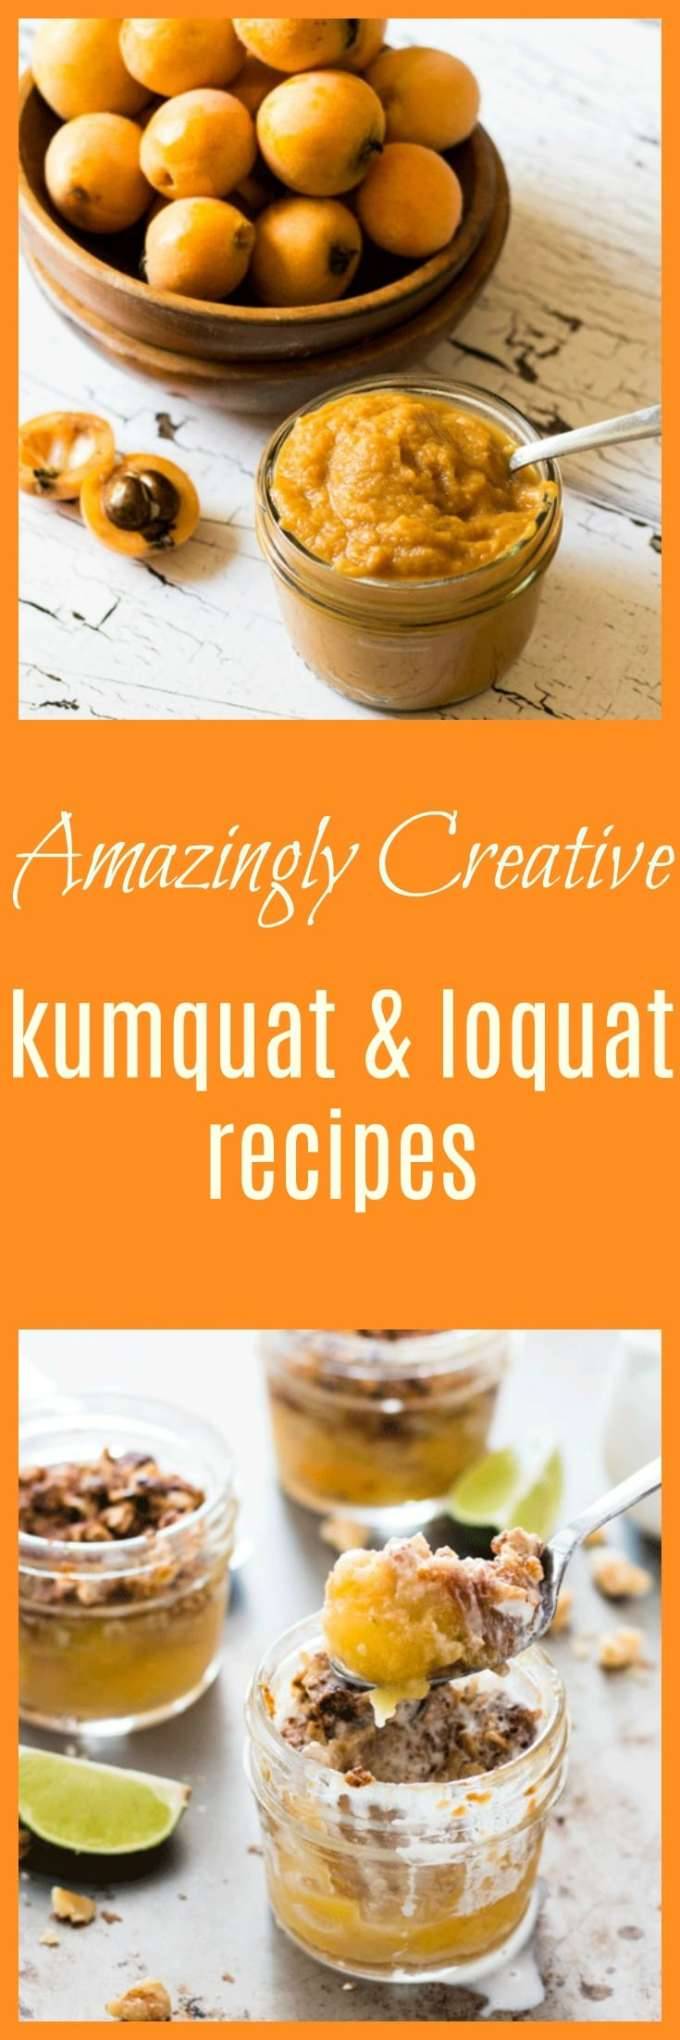 A collection of amazingly creative kumquat and loquat recipes to help you get the most out of this delicious seasonal fruit. All clean eating real food recipes.